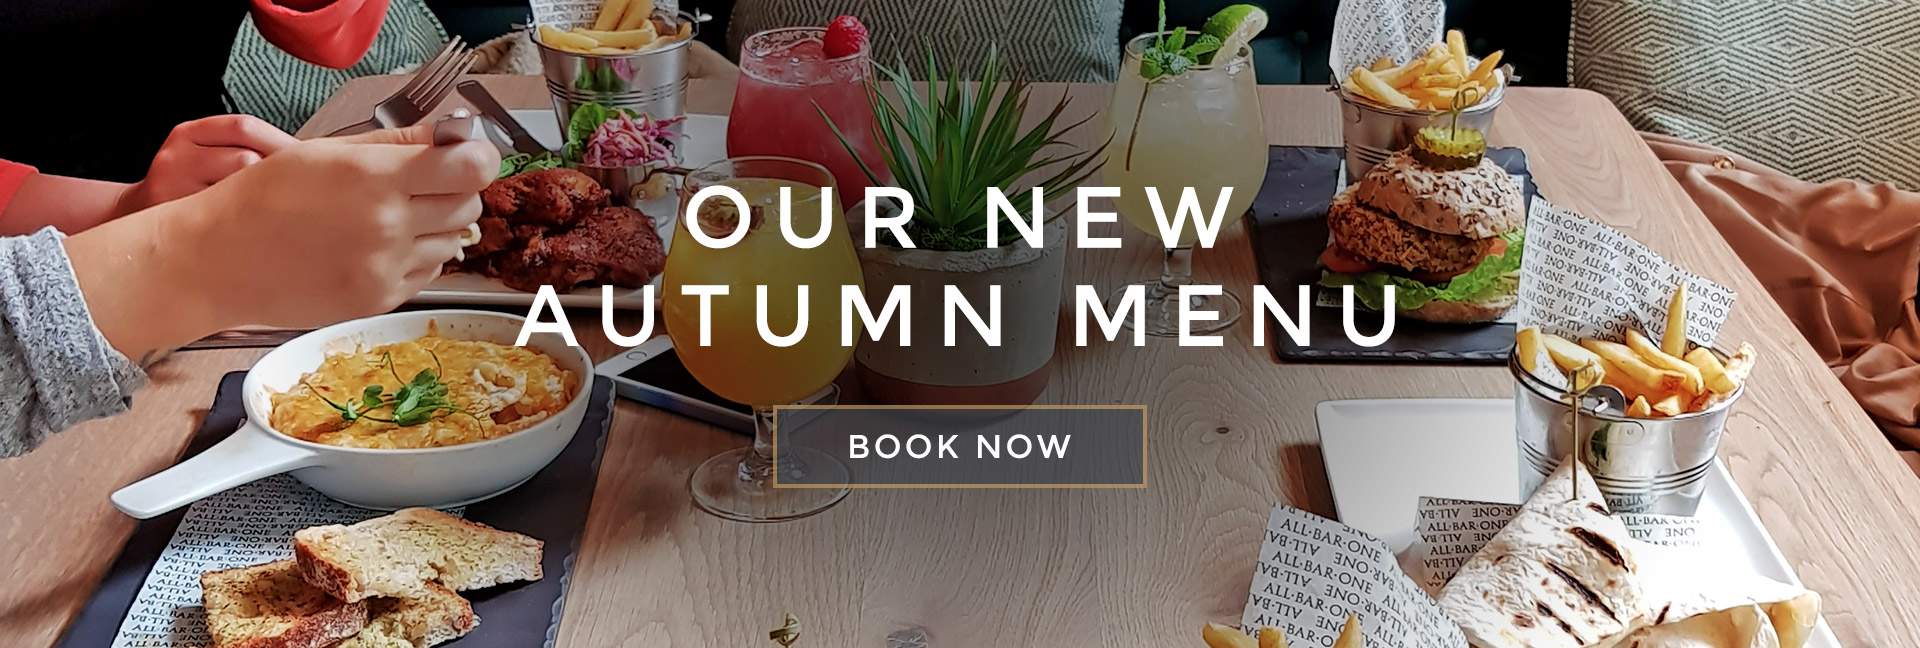 Our new Autumn menu at All Bar One Portsmouth - Book now